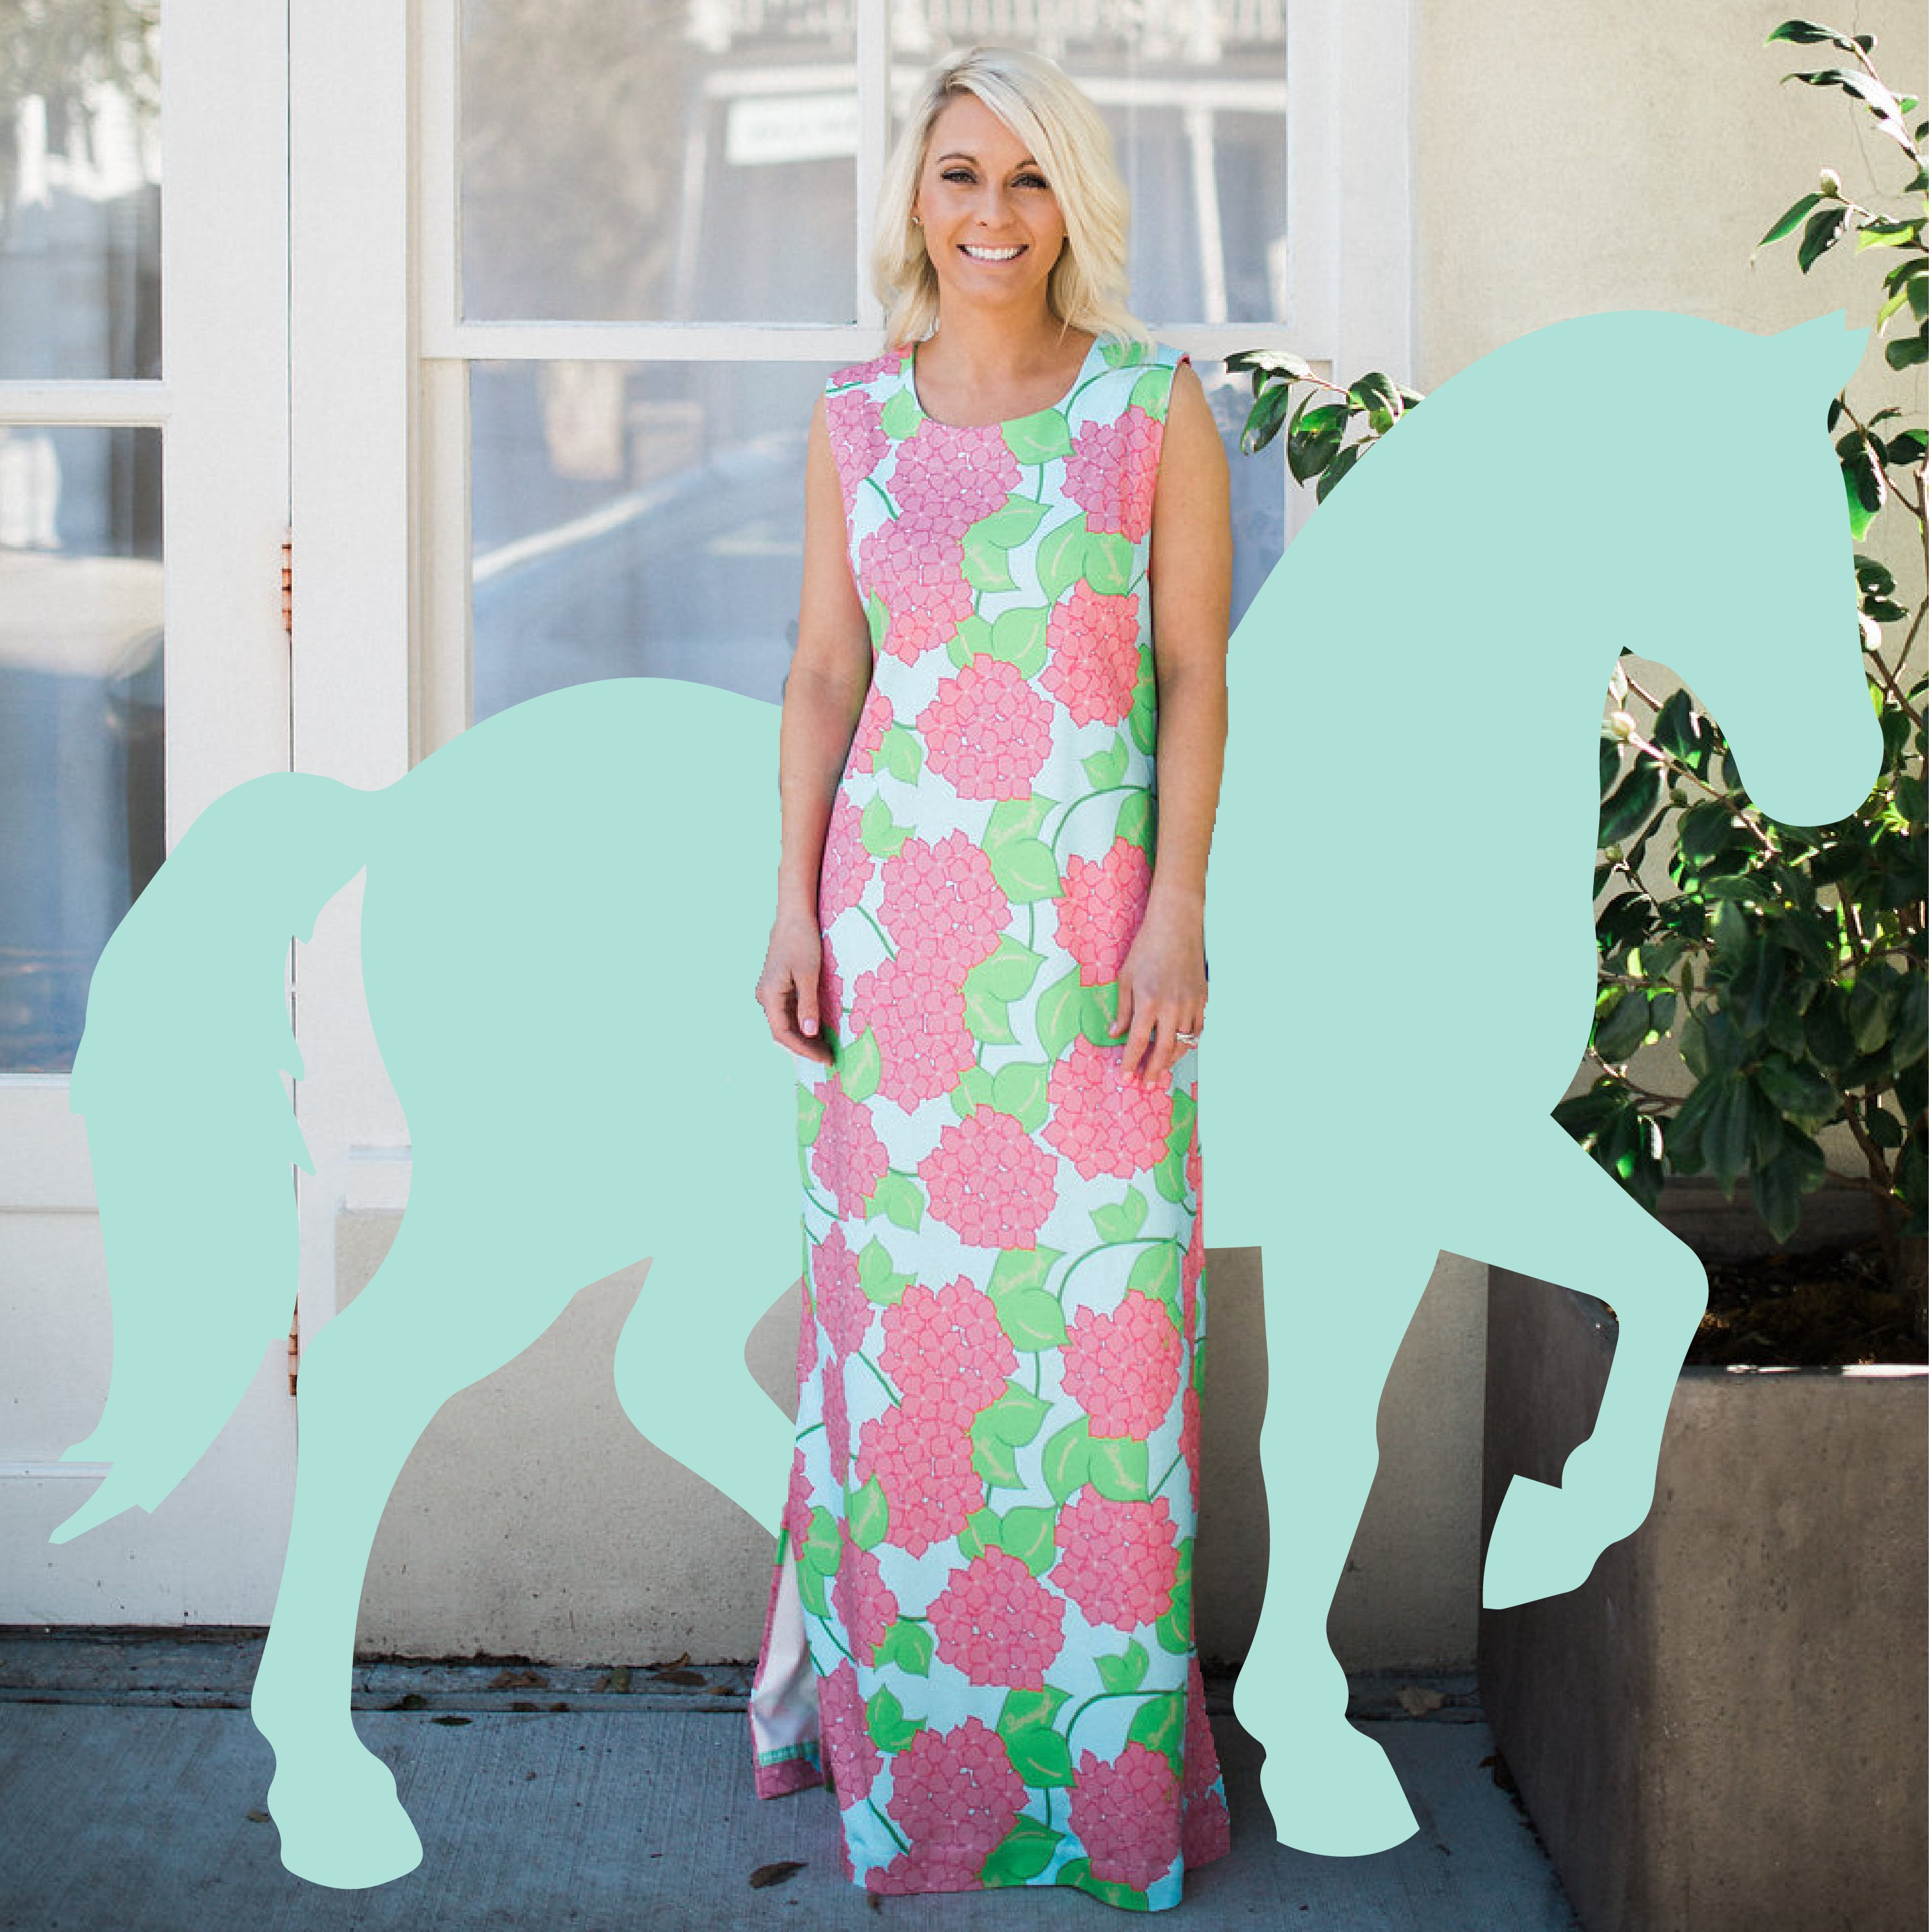 Borough dresses are perfect Carolina Cup outfits I Southern Shift Dresses I Based in Charleston SC